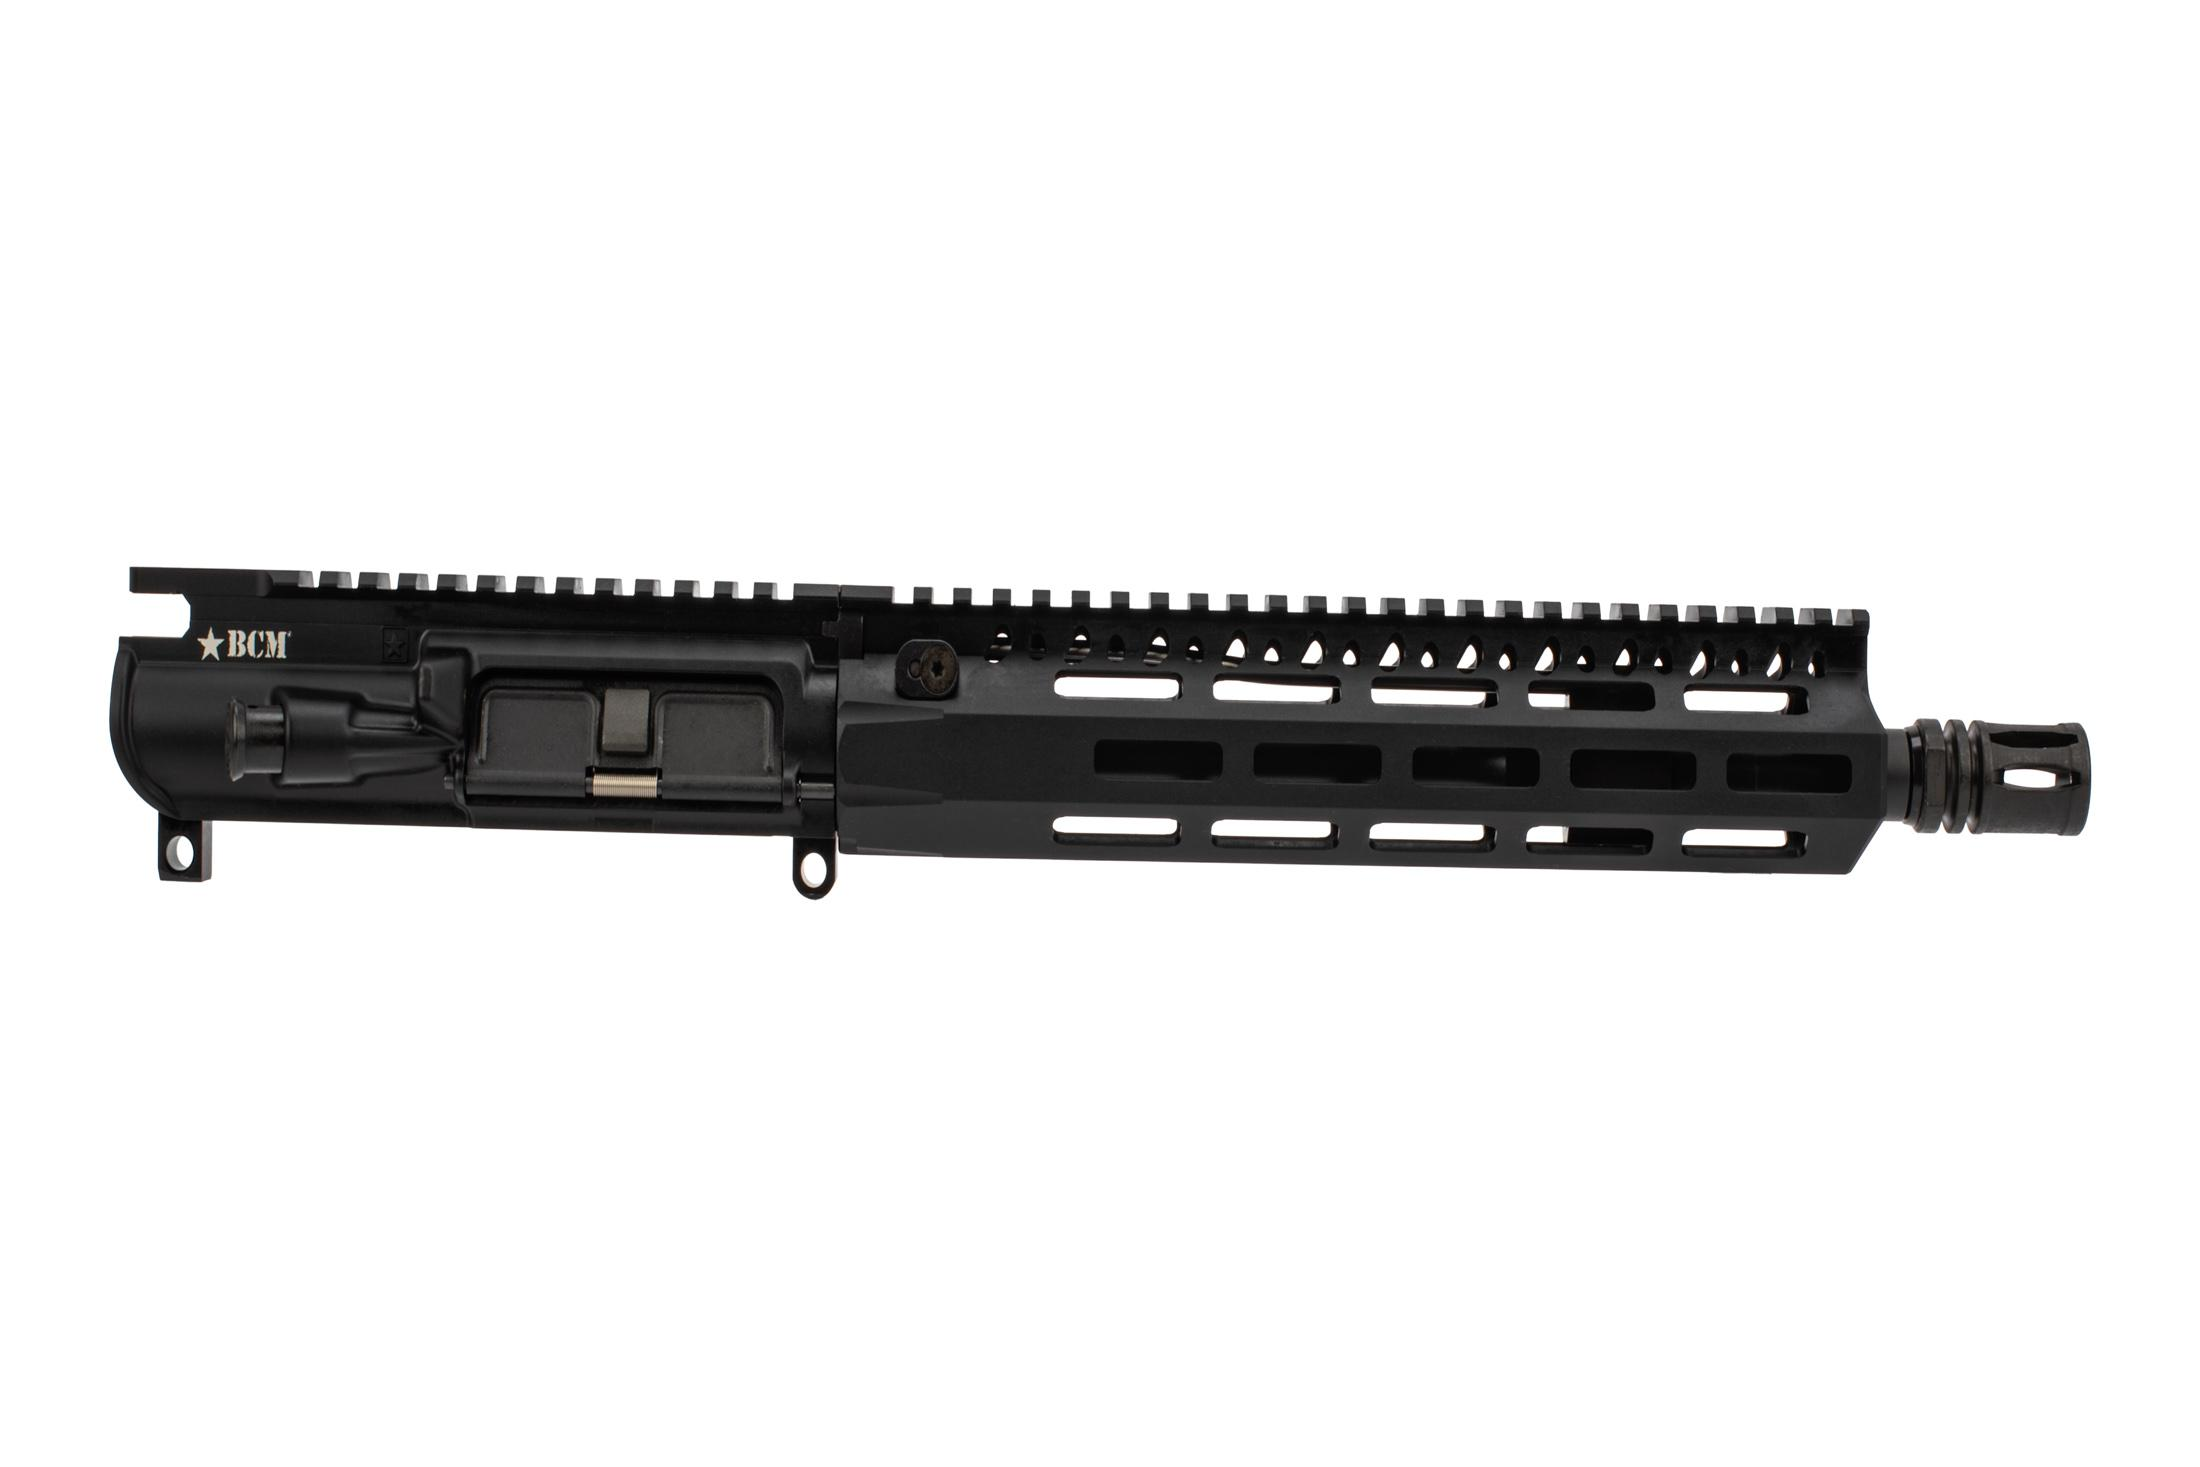 Bravo Company USA MK2 BFH Carbine Barreled upper receiver 11.5 features the MCMR handguard